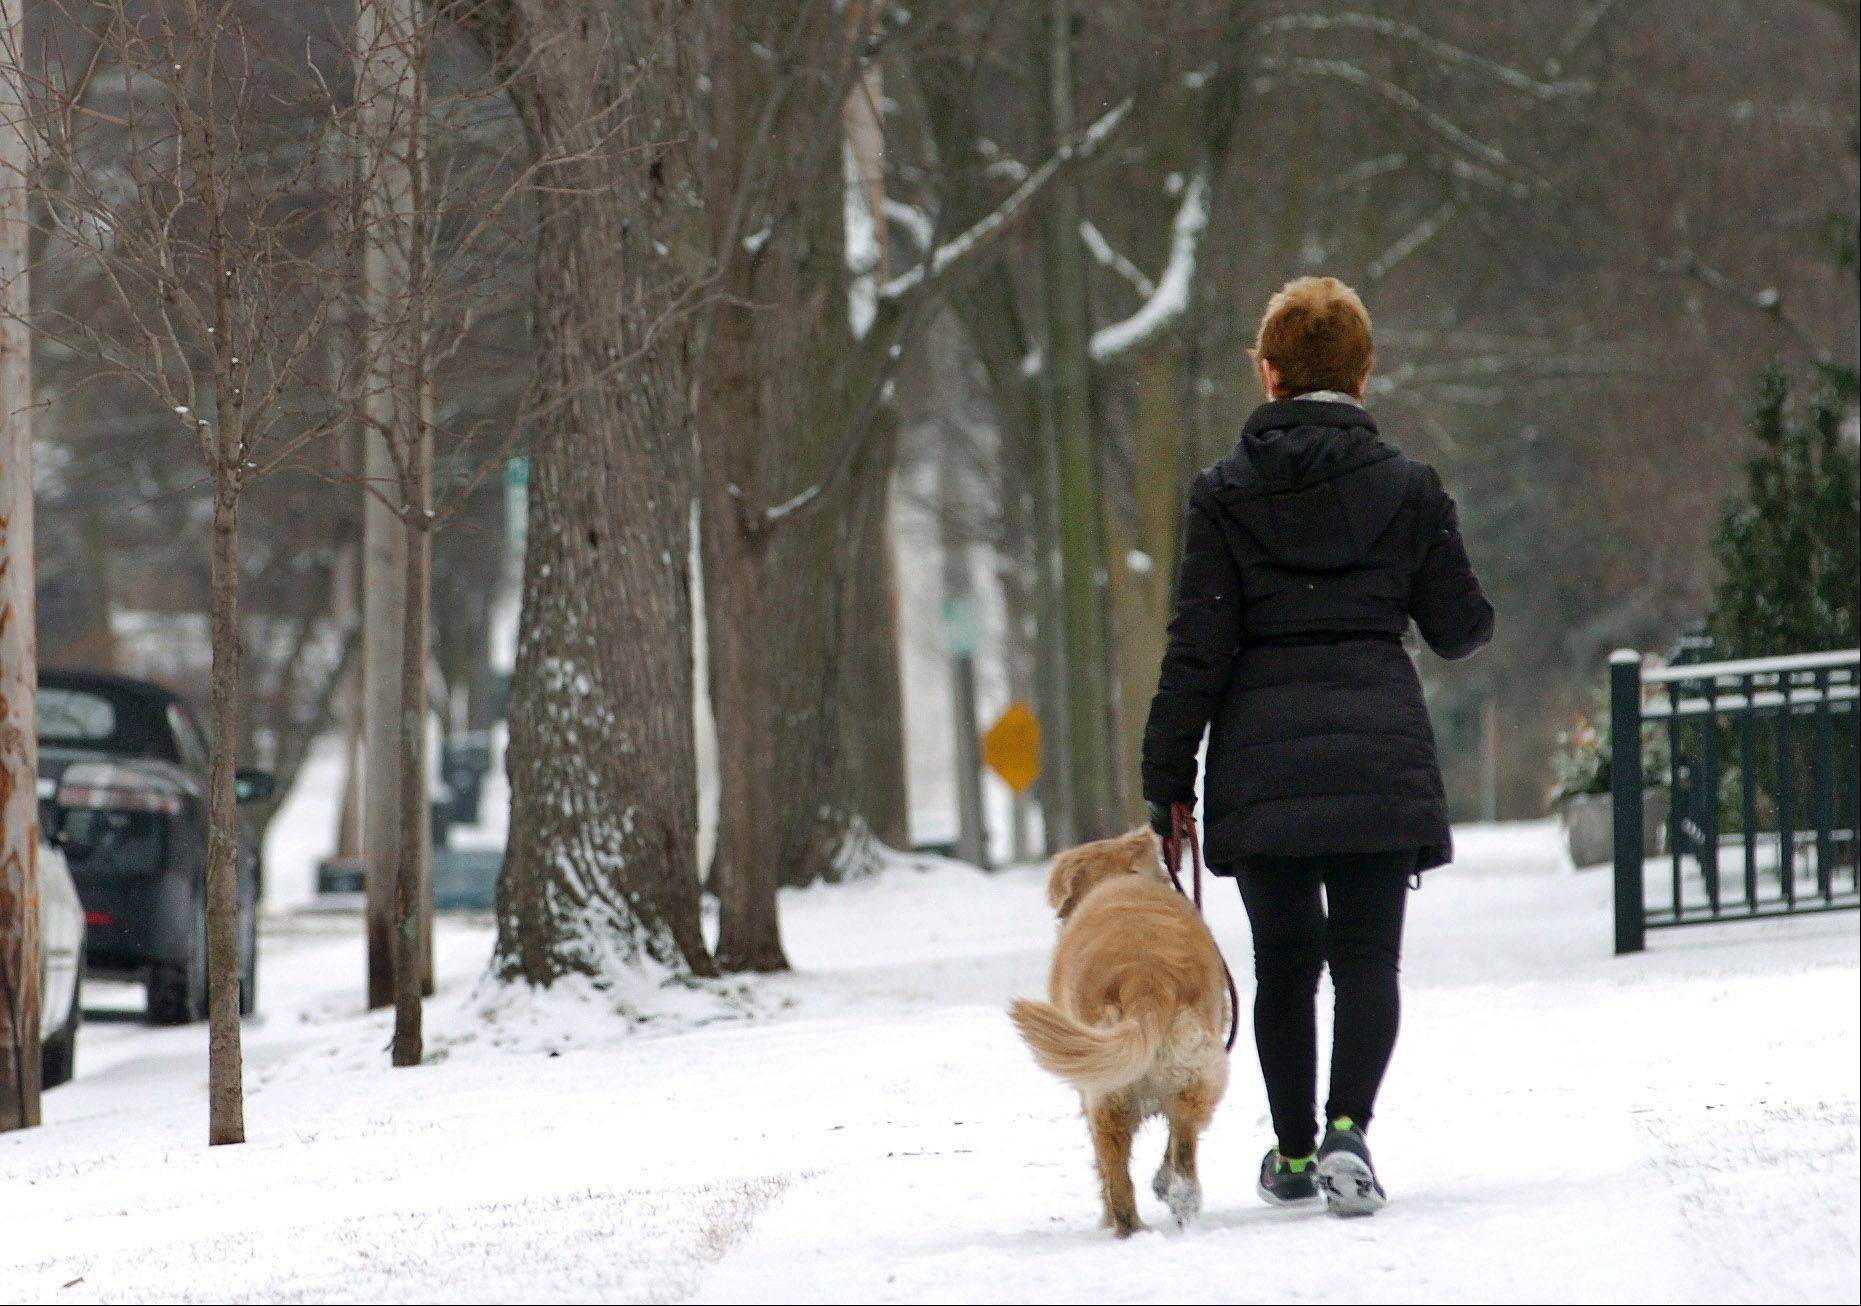 Judi Cellini walks along Cook Street in Barrington with her dog, Lily, despite the early morning snow. She walks a mile every morning while getting a cup of coffee.